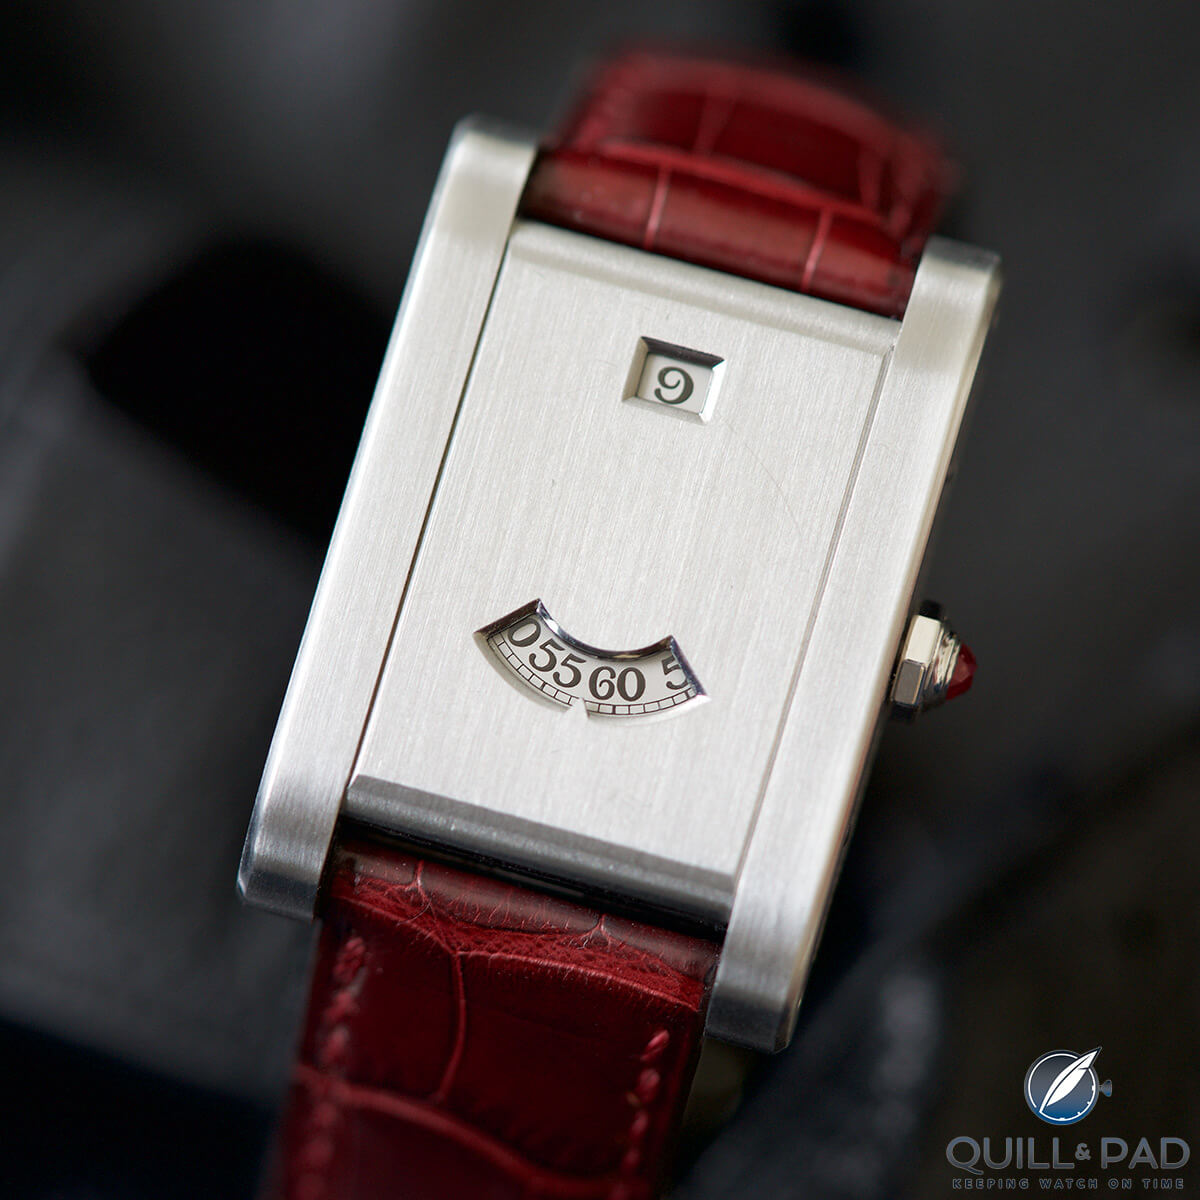 My First Hands On Encounter With The Cartier Tank      Guichets  A     Cartier Tank      Guichets in platinum